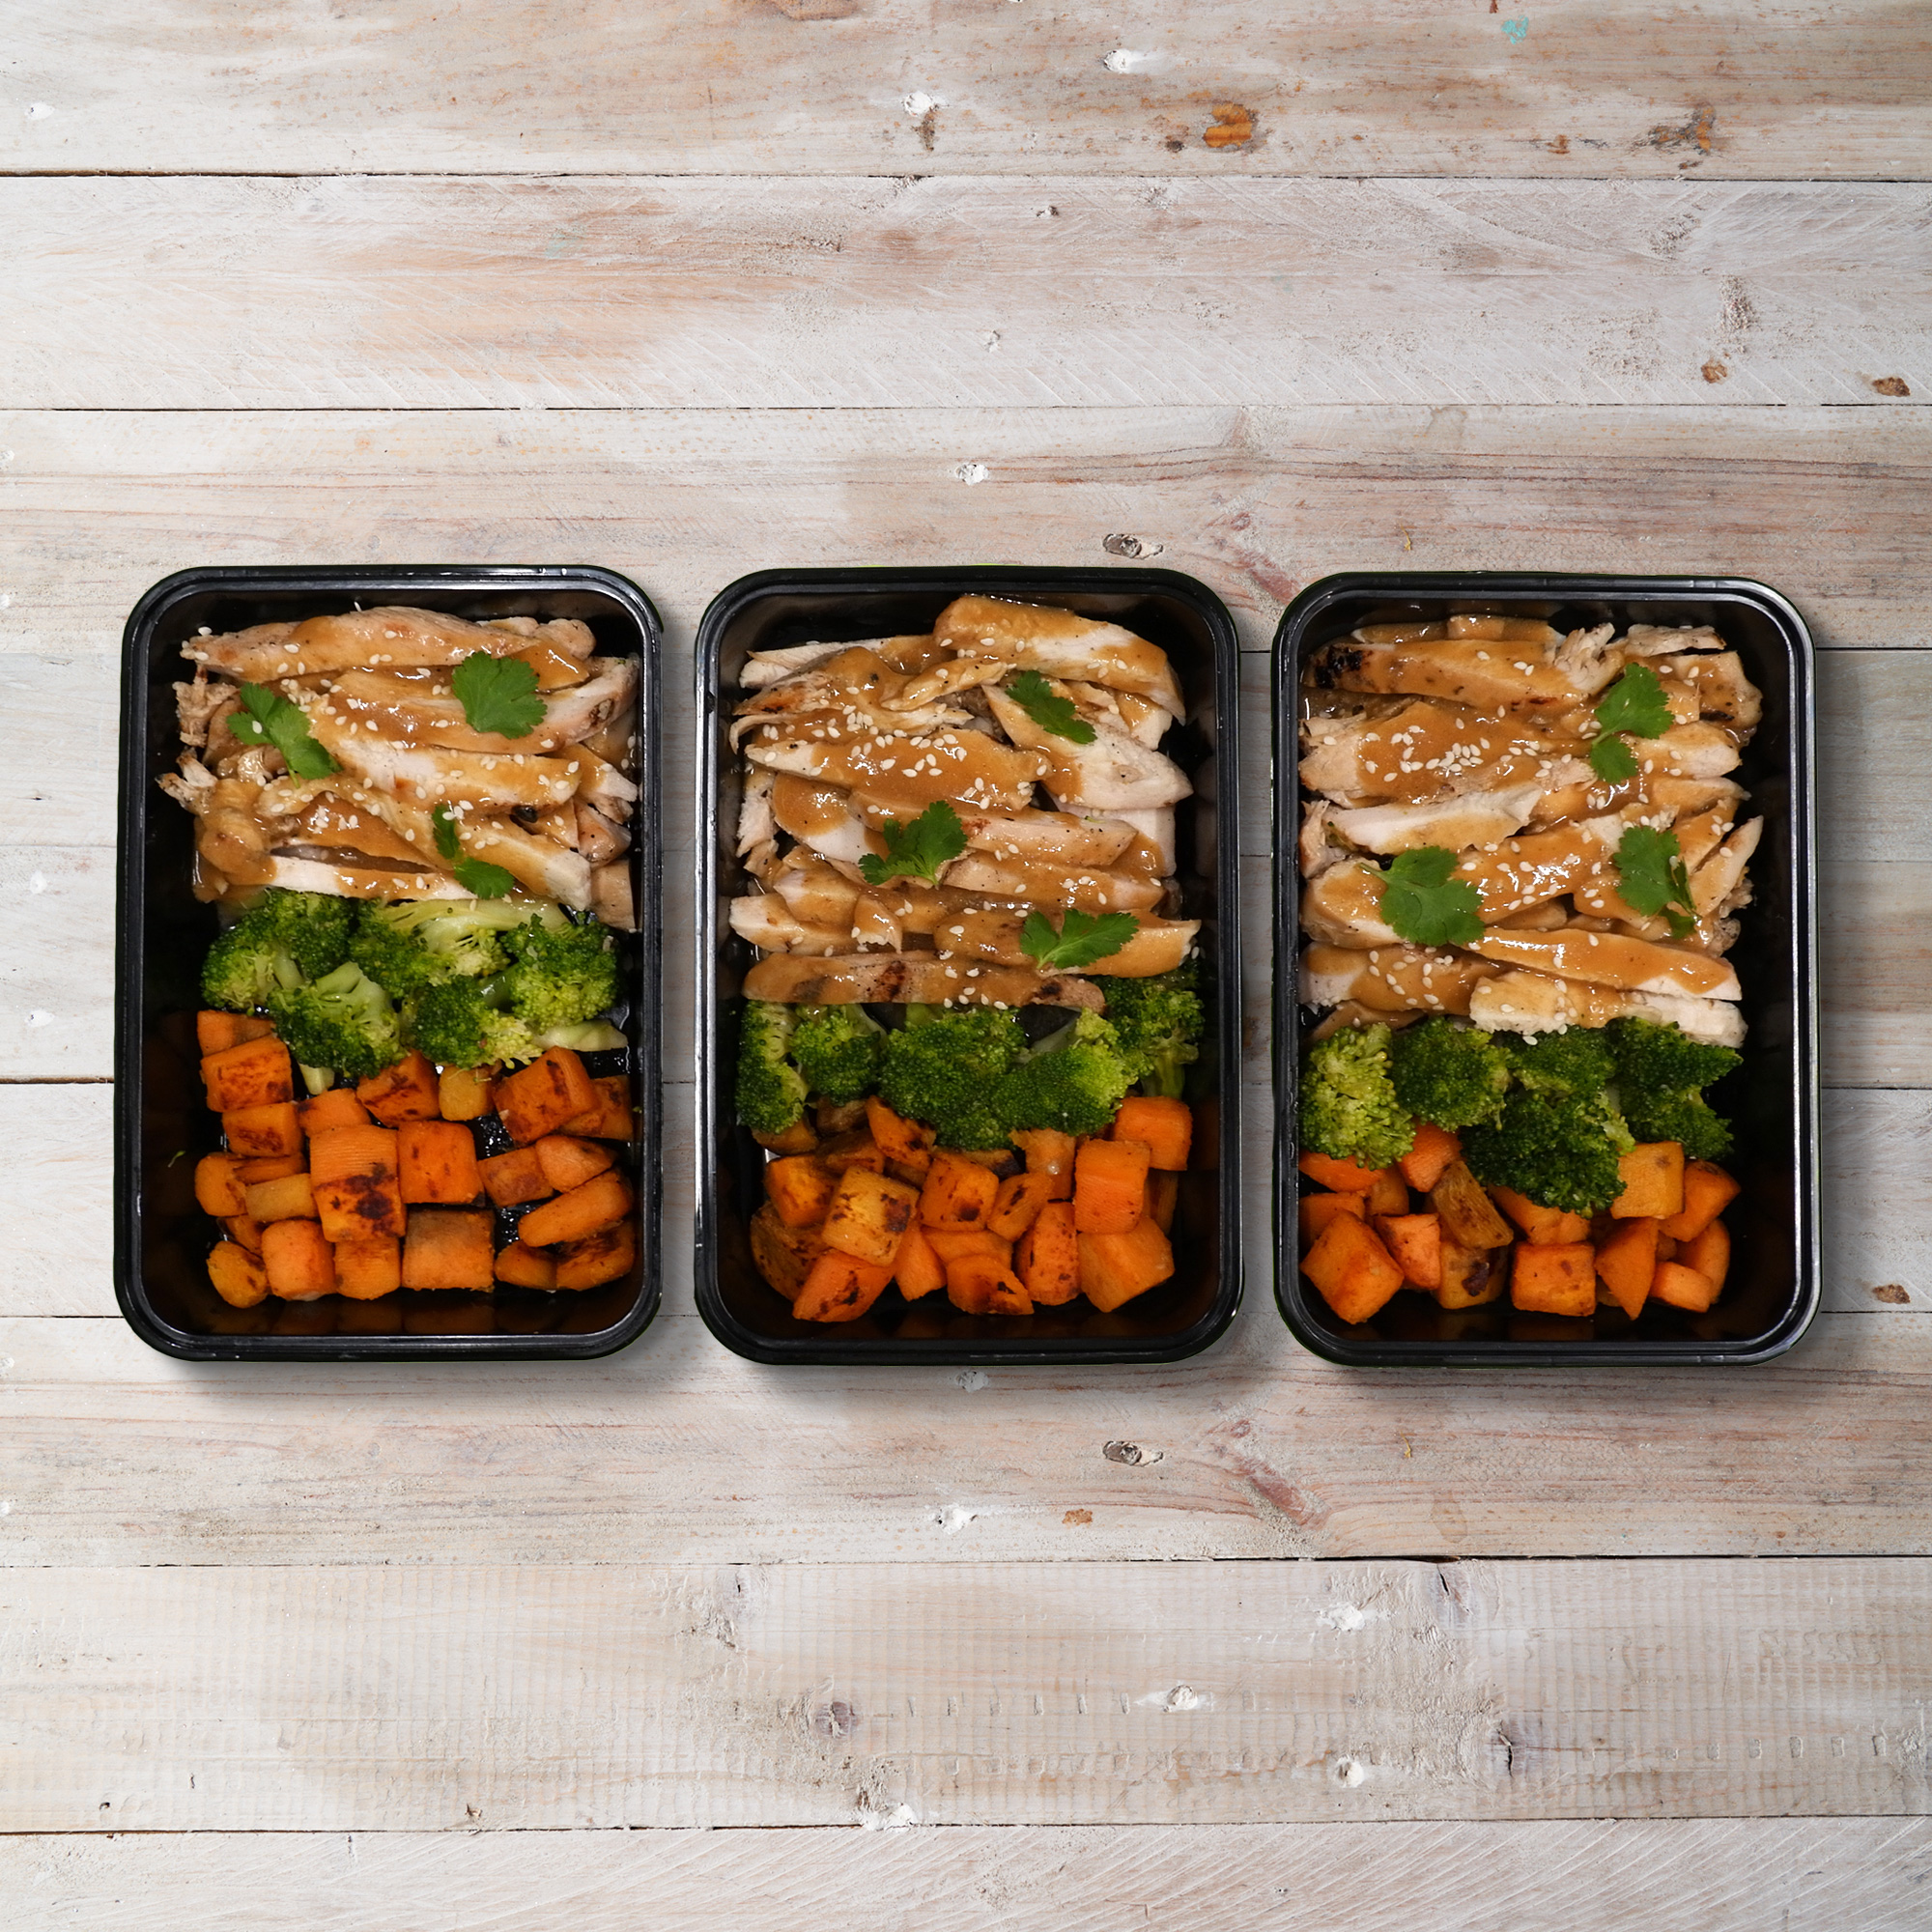 Choose your portion size - Want to lose weight? Maintain your current physique? Different goals require different servings!We've made it easier for you to ensure you get the nutrition you need. Calculate your recommended portion size with our calorie calculator.